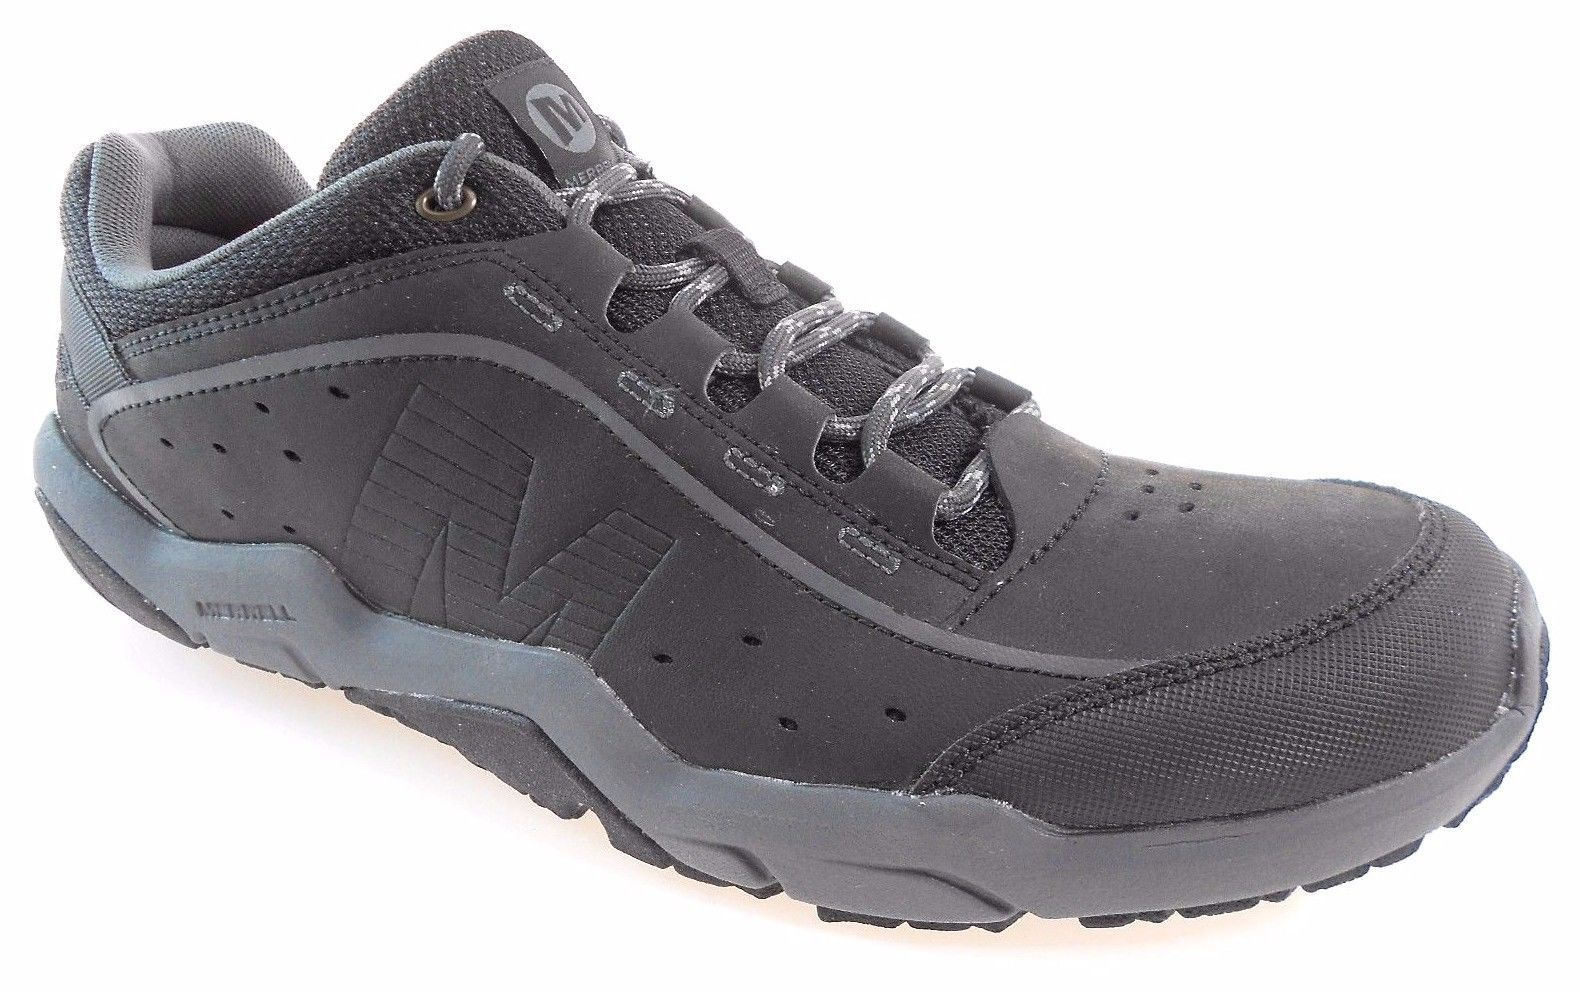 MERRELL TRAVERSO MEN'S BLACK HIKING SHOES, J308366C